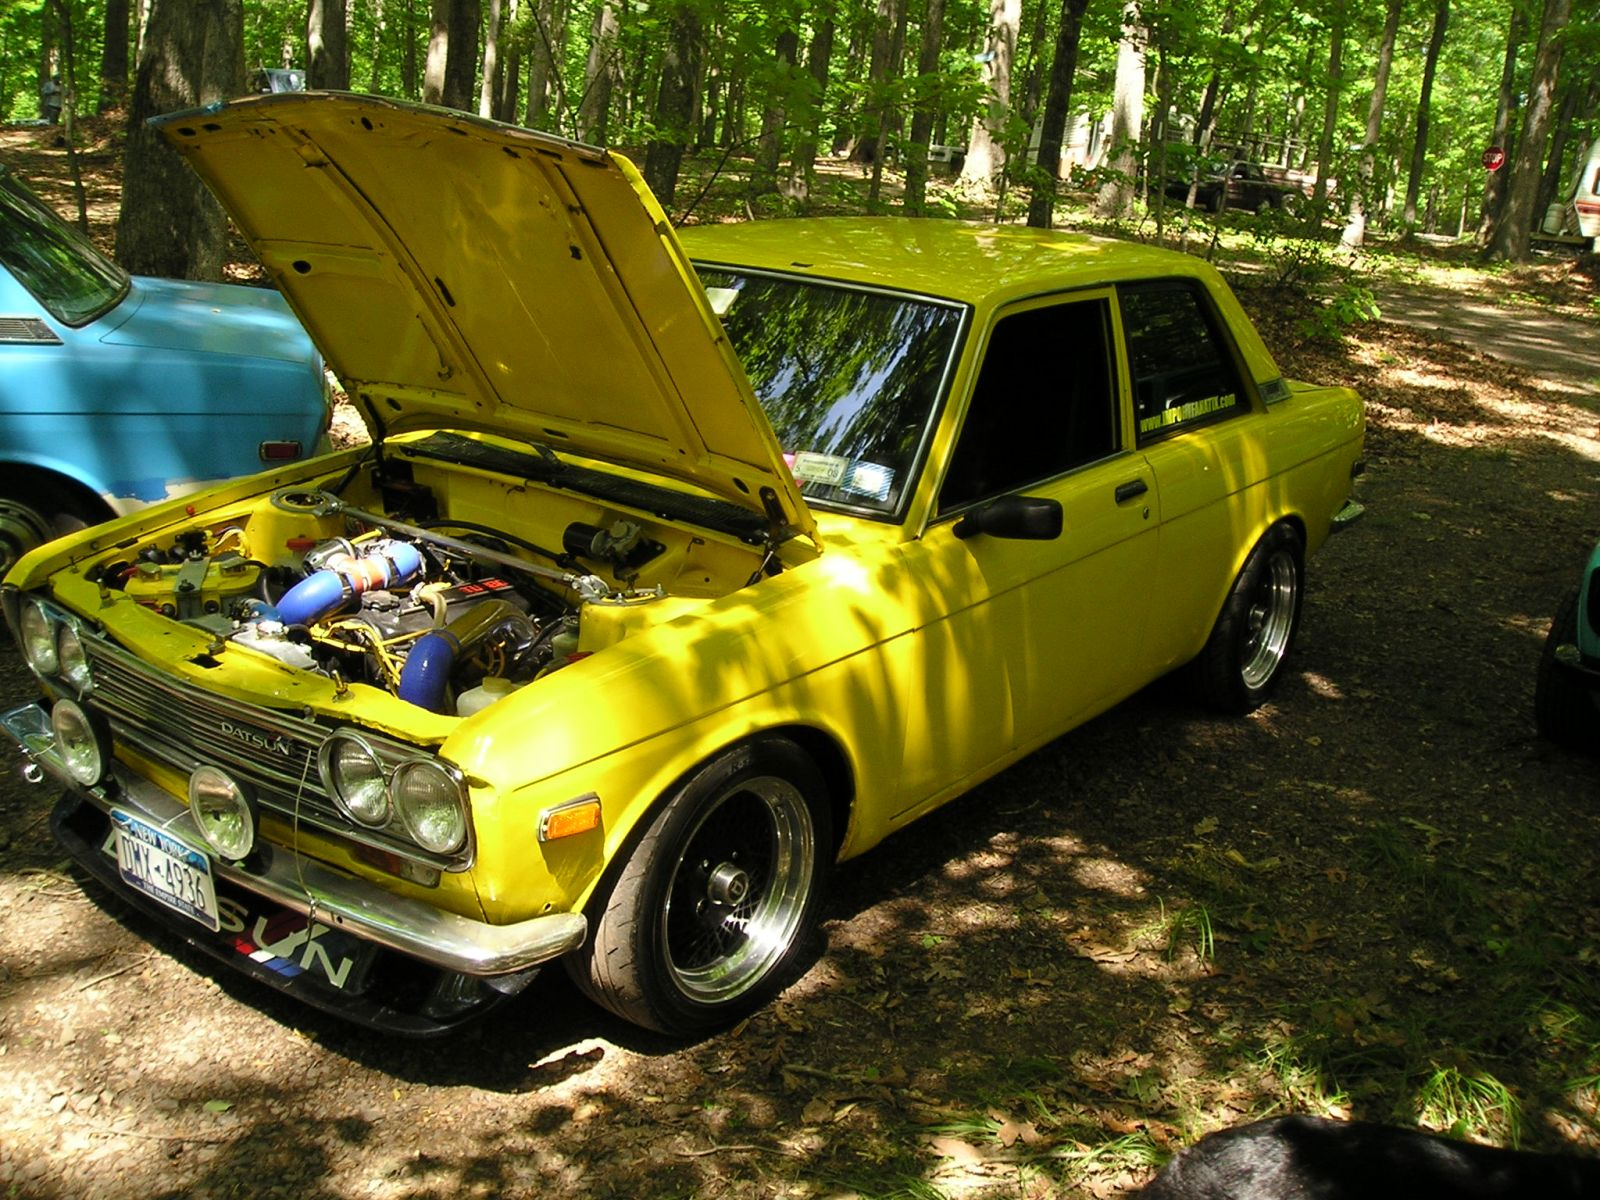 11th Annual East Coast Datsun 510 meet at Cedar Mountain